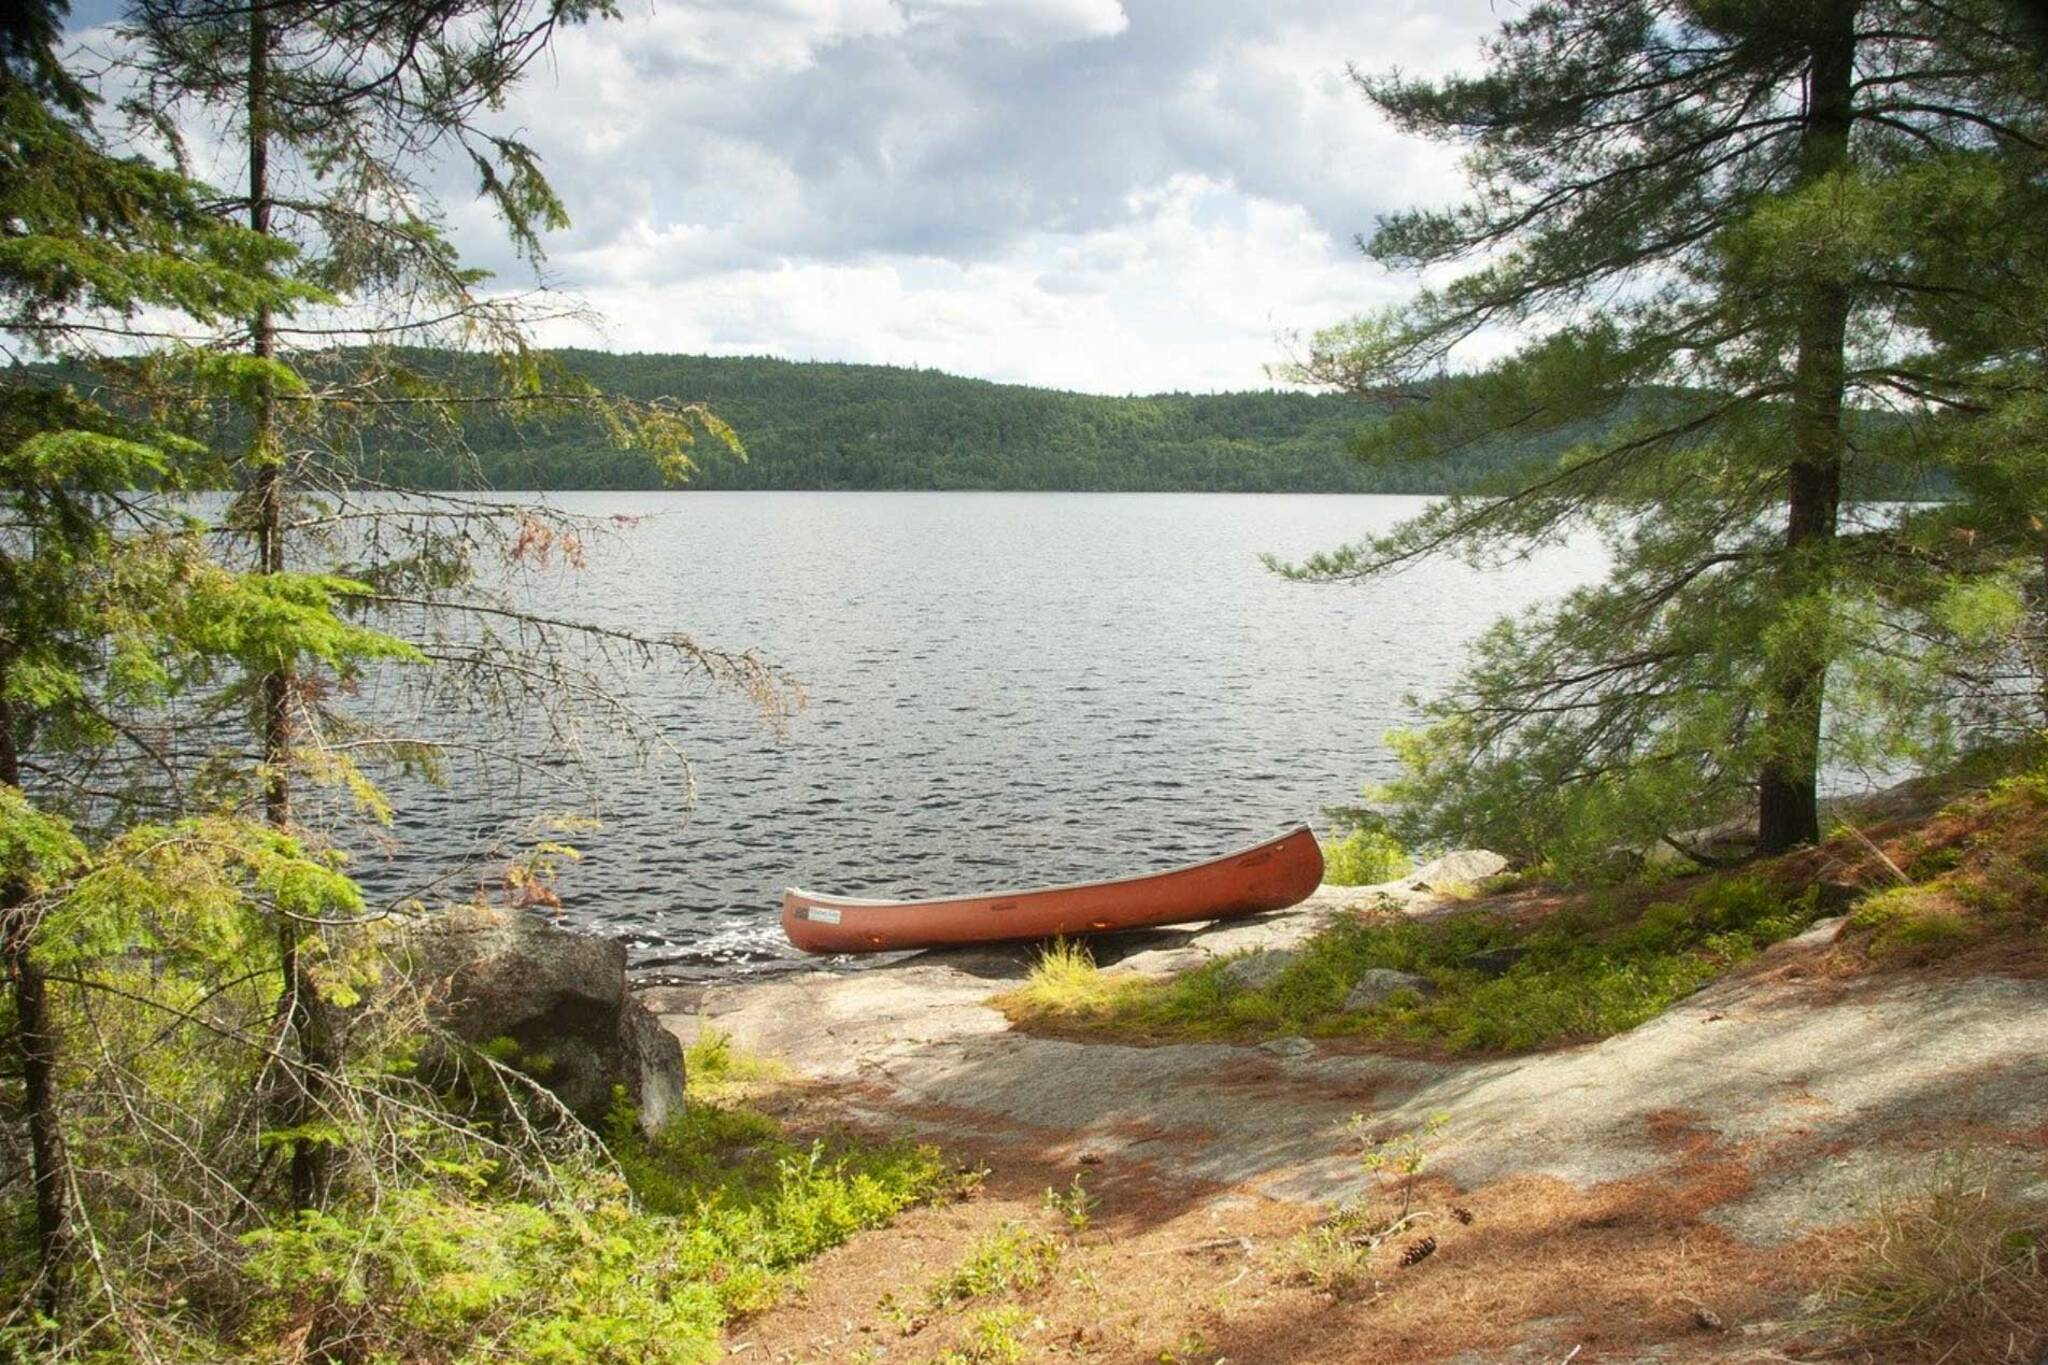 Parks Canada camping reservations